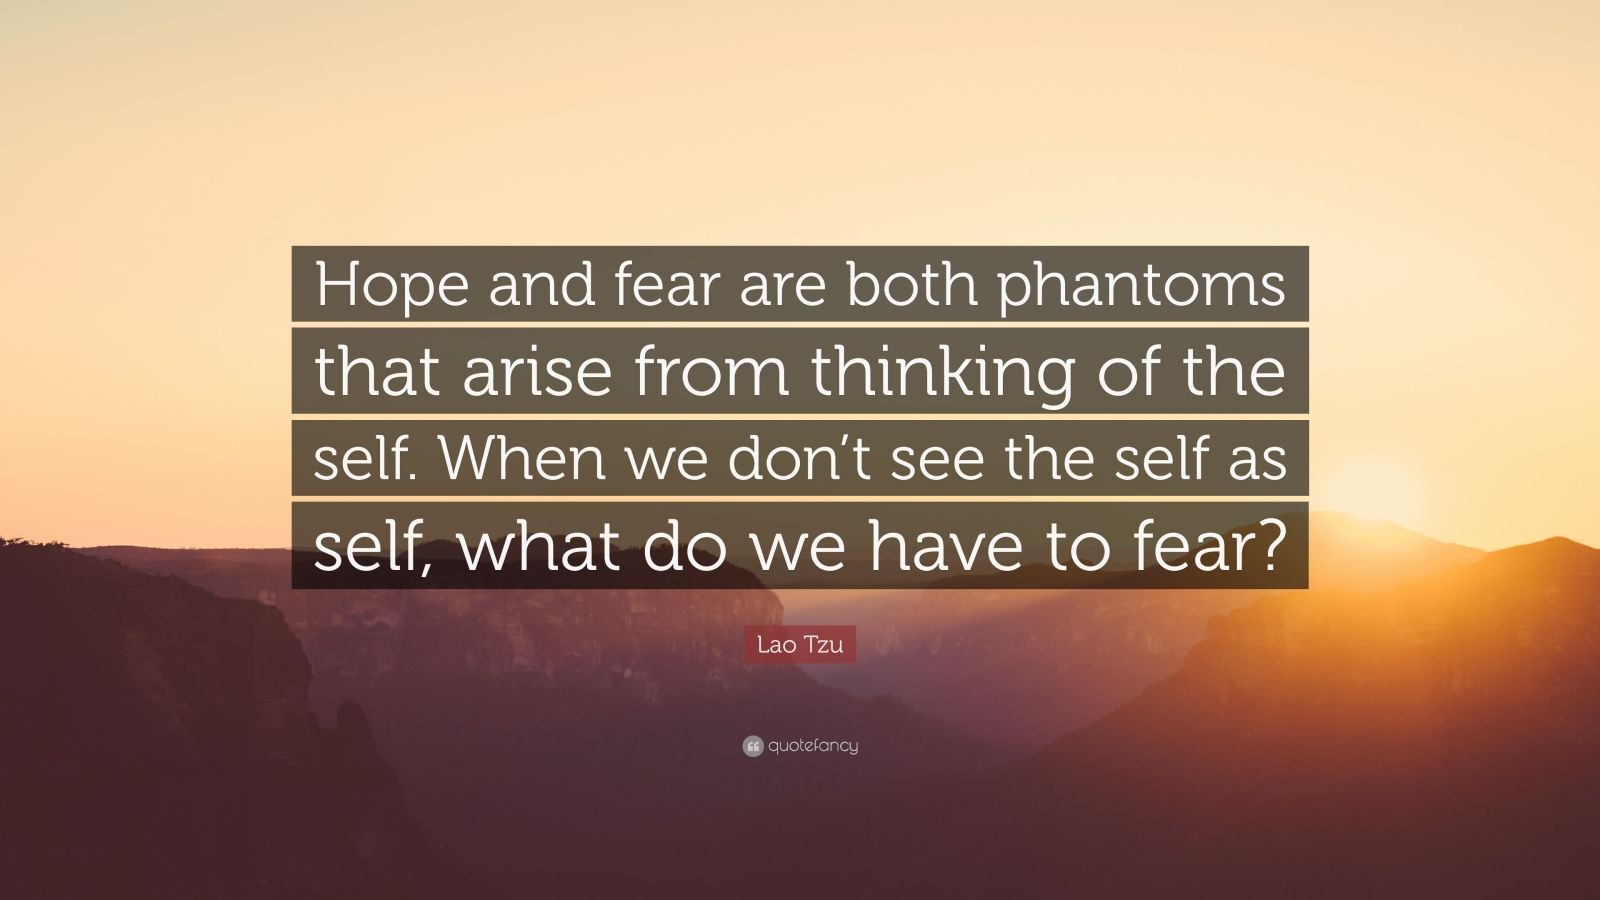 "Lao Tzu Quote: ""Hope and fear are both phantoms that arise from thinking of the self. When we don't see the self as self, what do we have to fear?"""